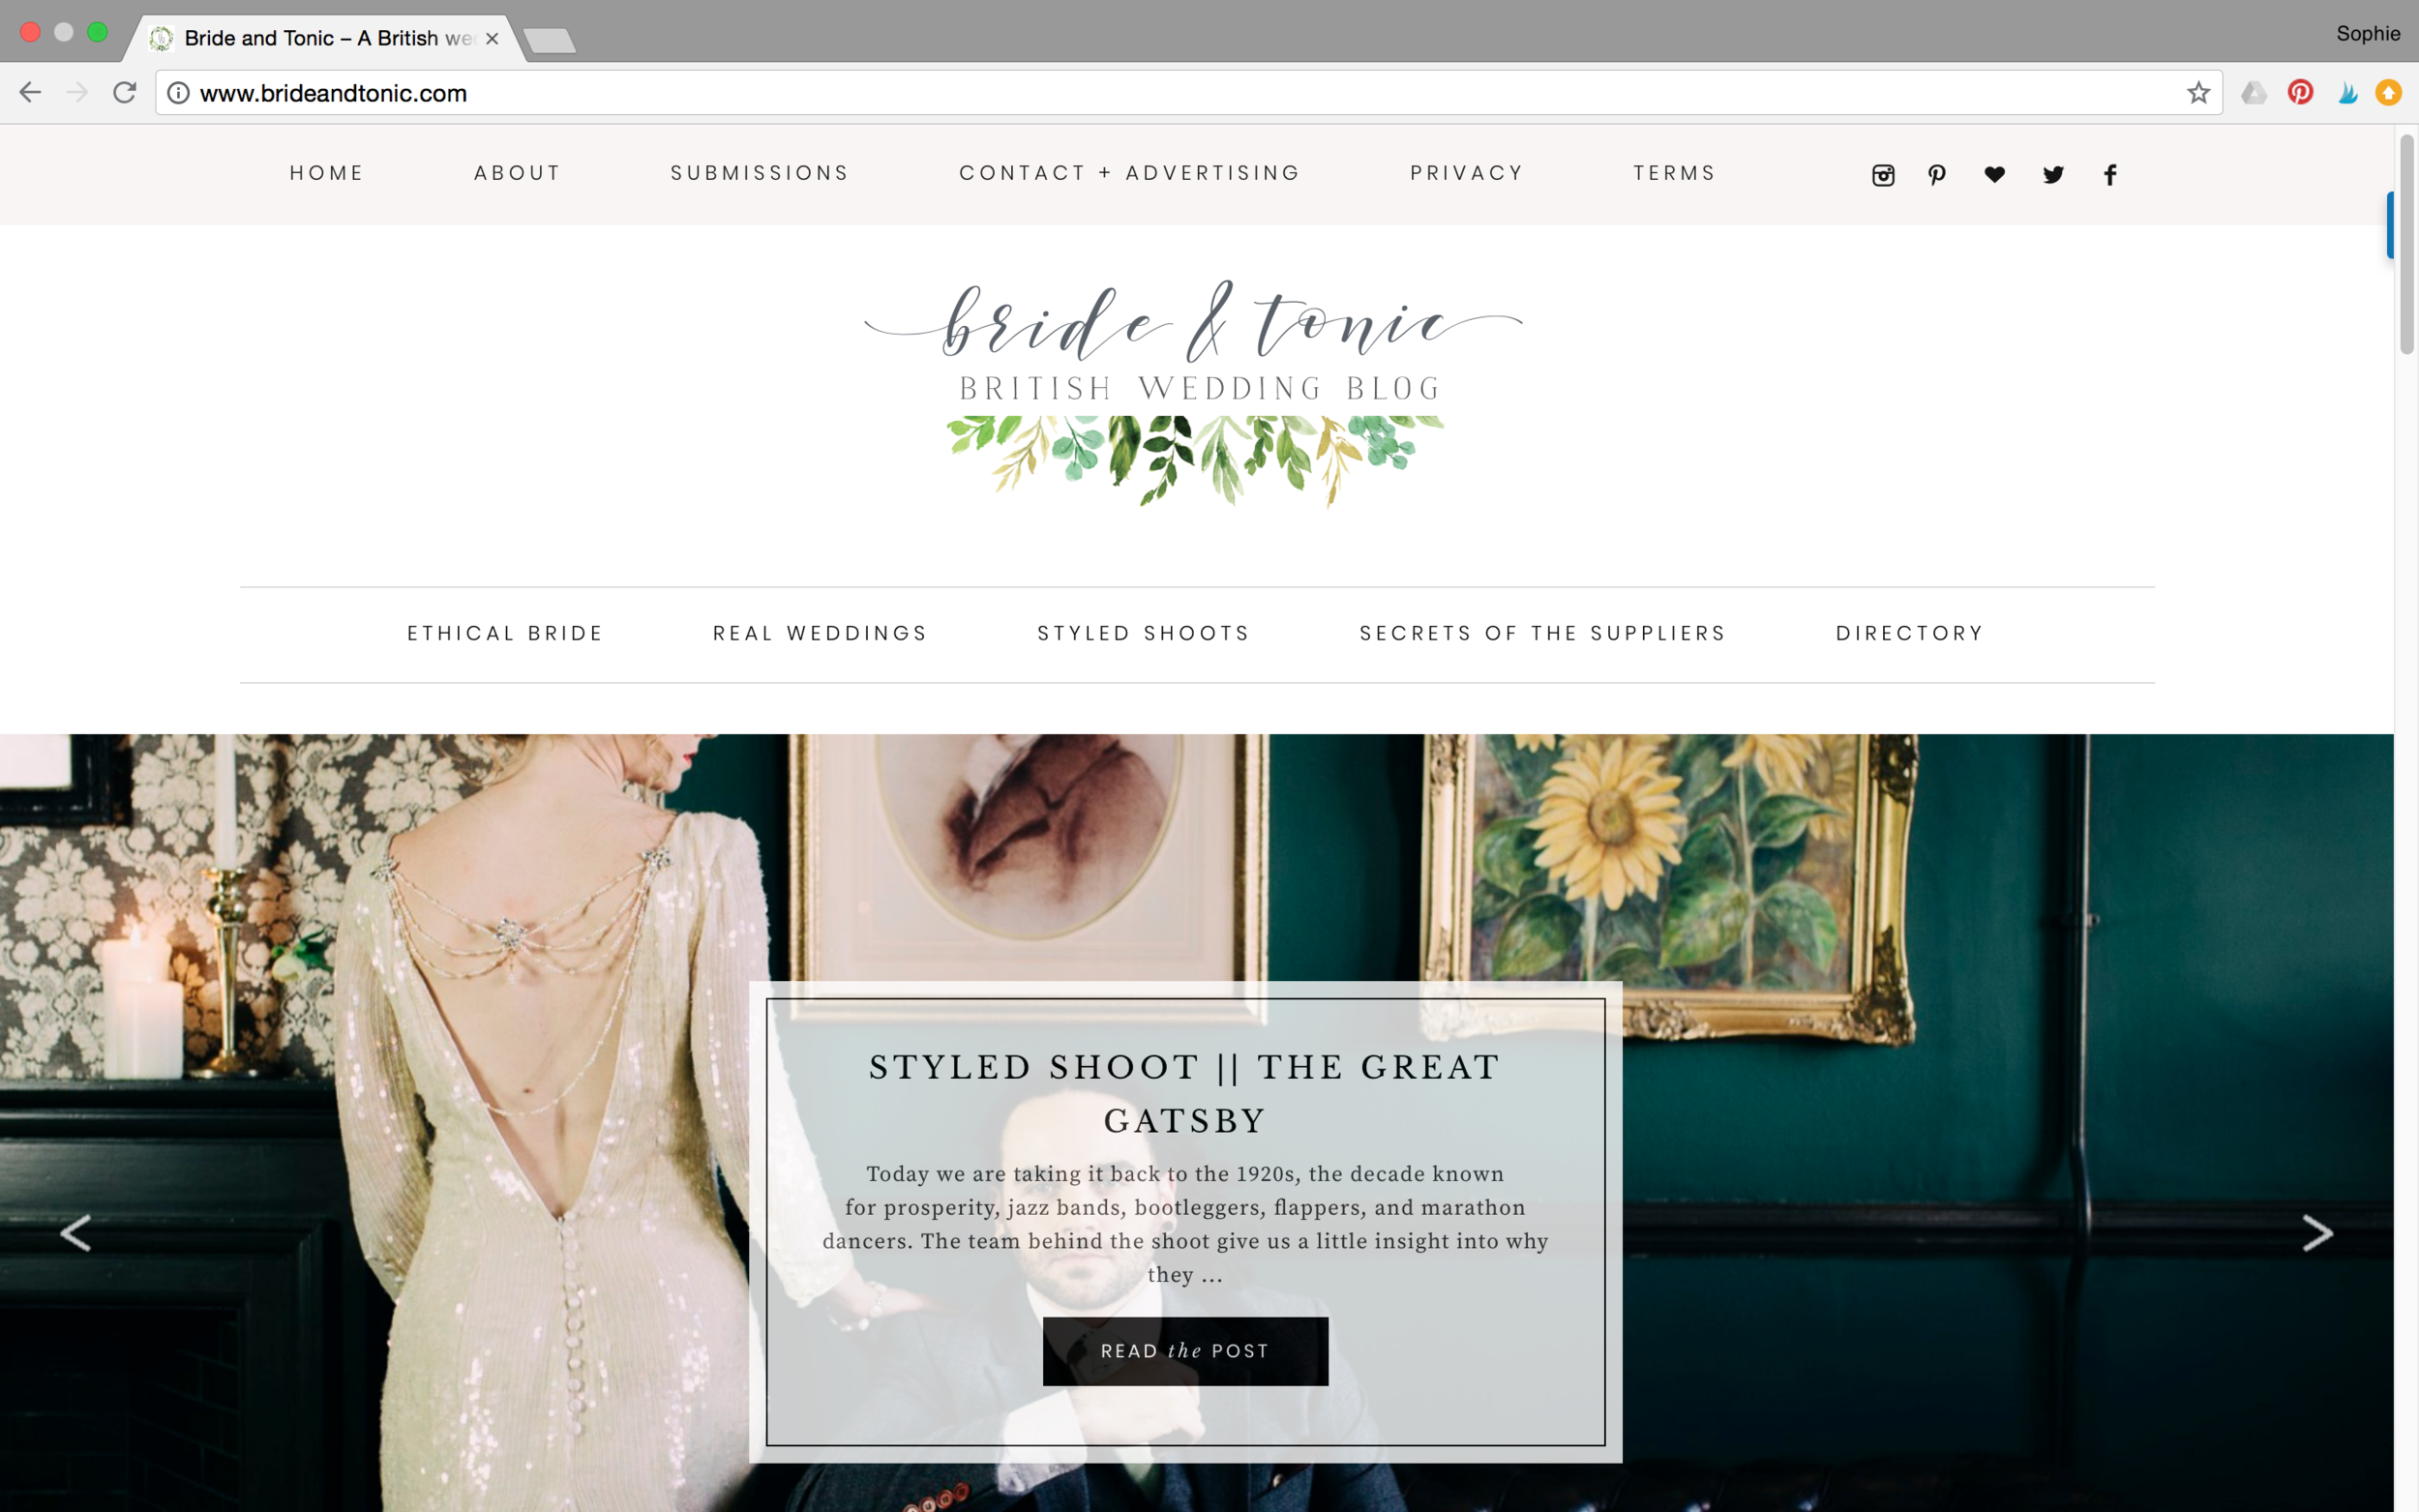 Bride_and_tonic_feature_wedding_blog.png